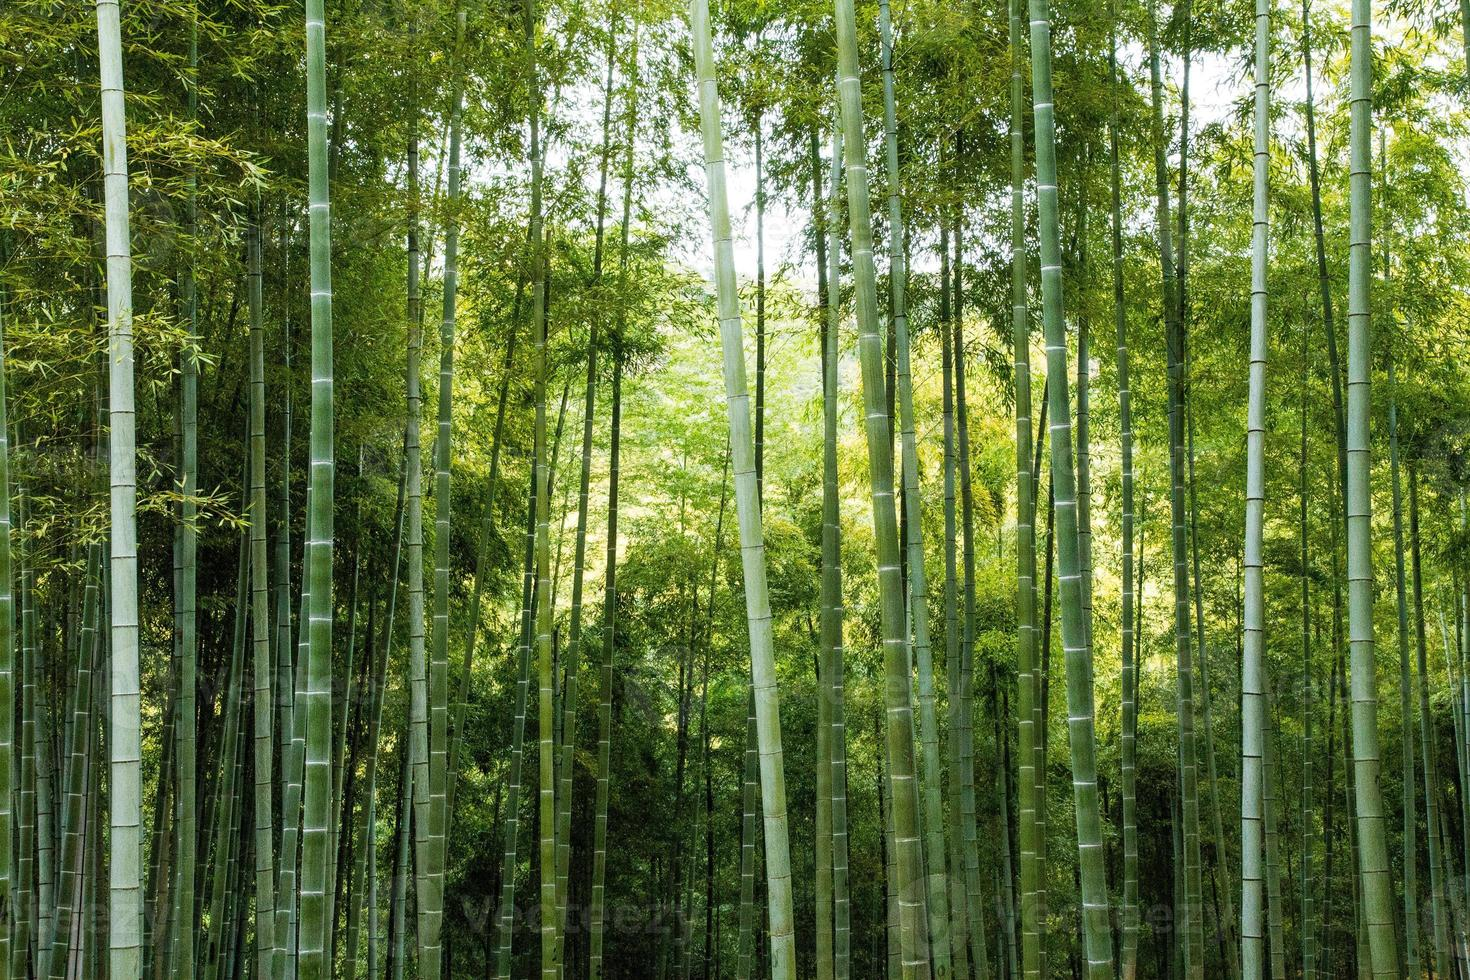 Wild Bamboo Forest photo